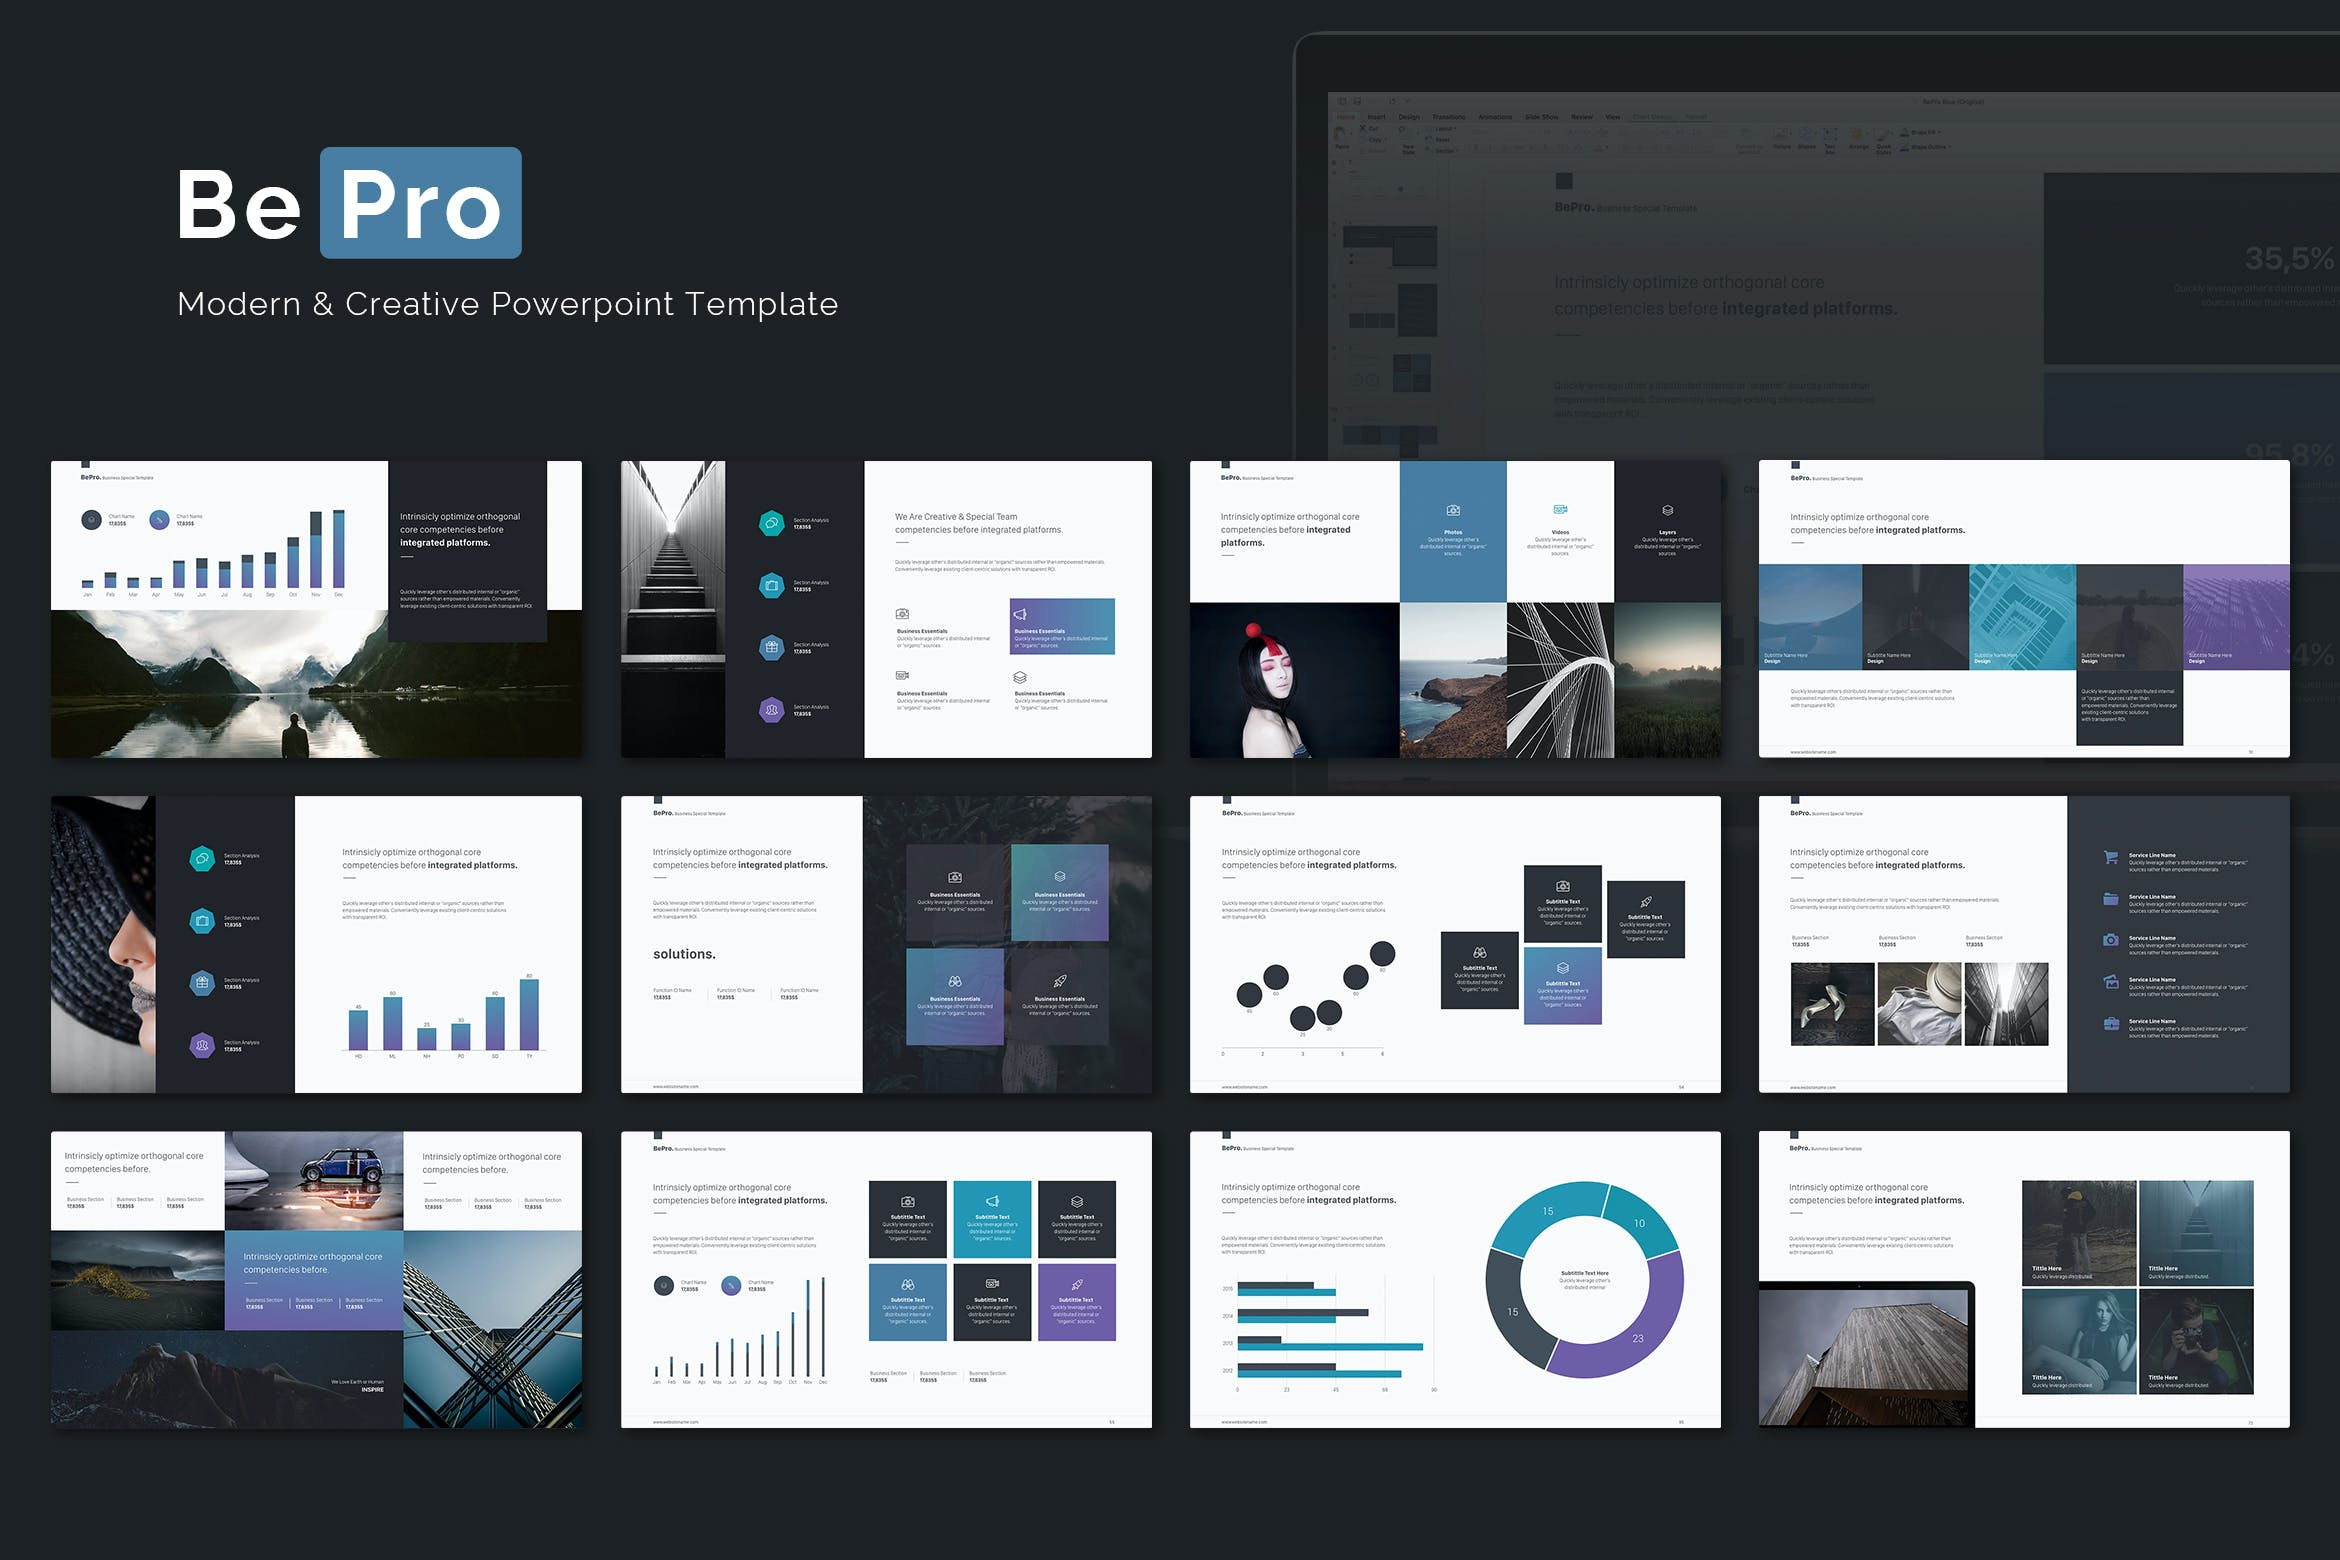 Bepro powerpoint business template by simplesmart on envato elements alramifo Choice Image